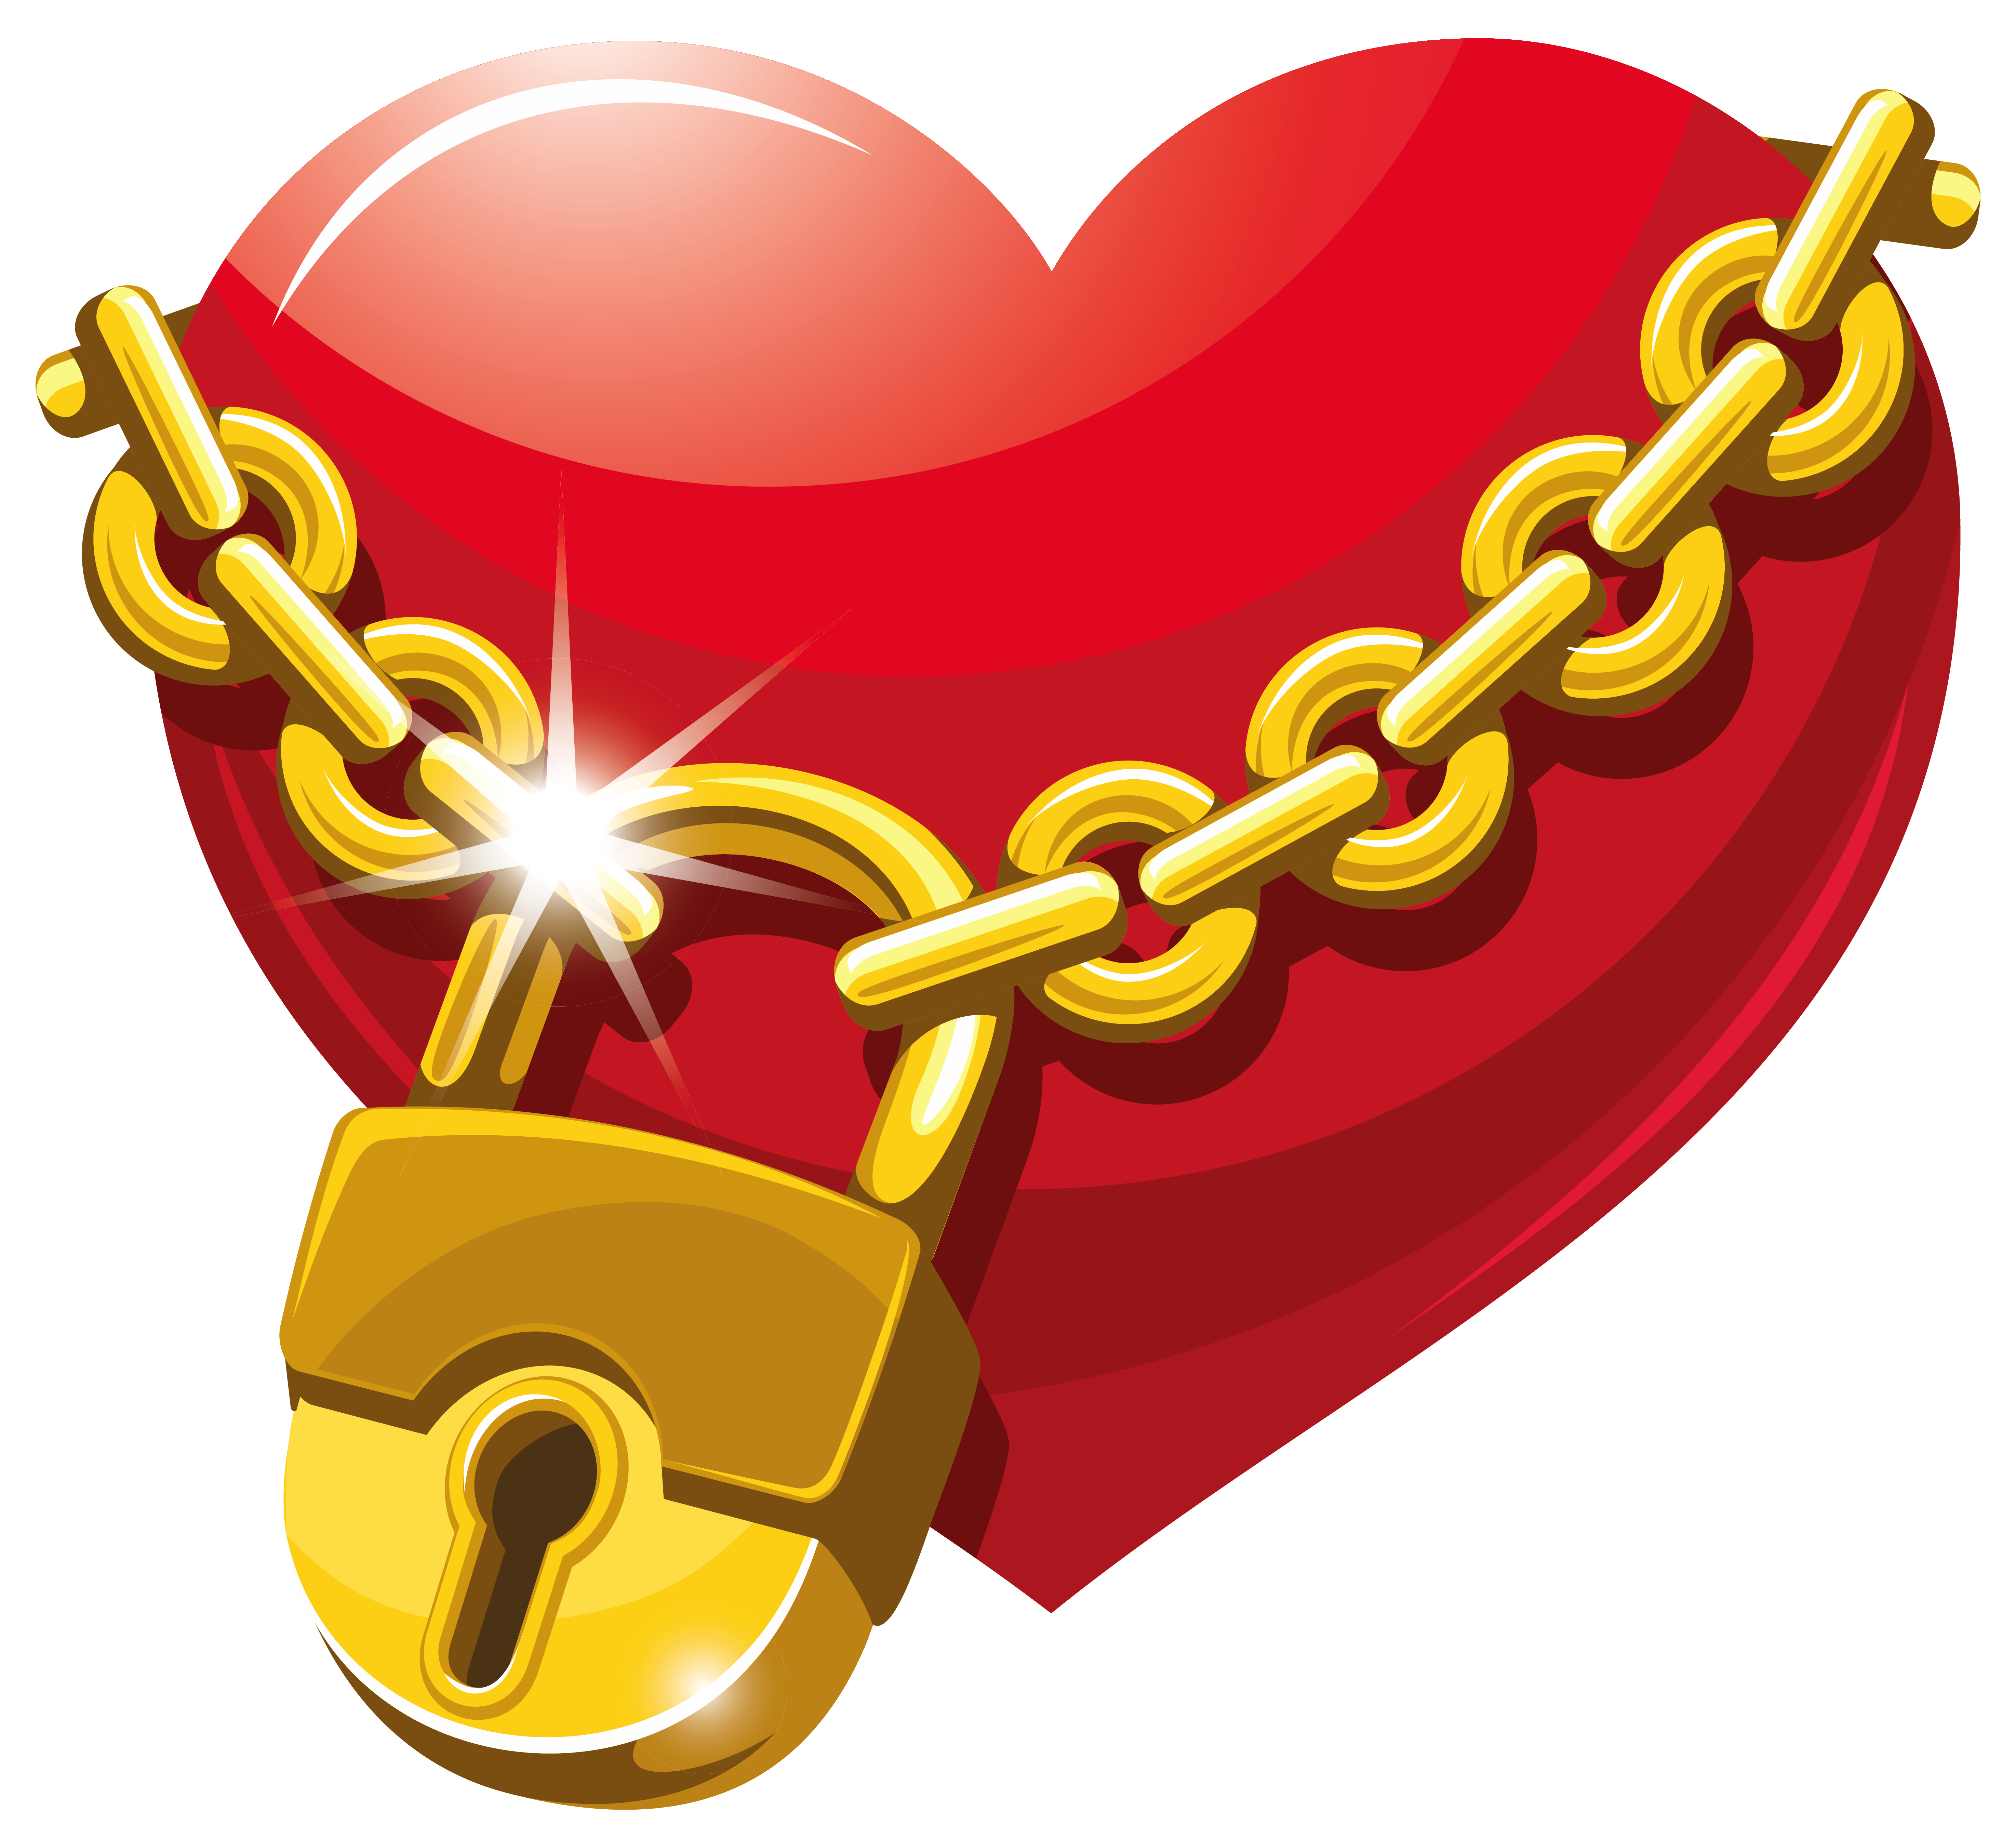 Chain link heart clipart transparent download Locked Heart PNG Clipart | Gallery Yopriceville - High-Quality ... transparent download